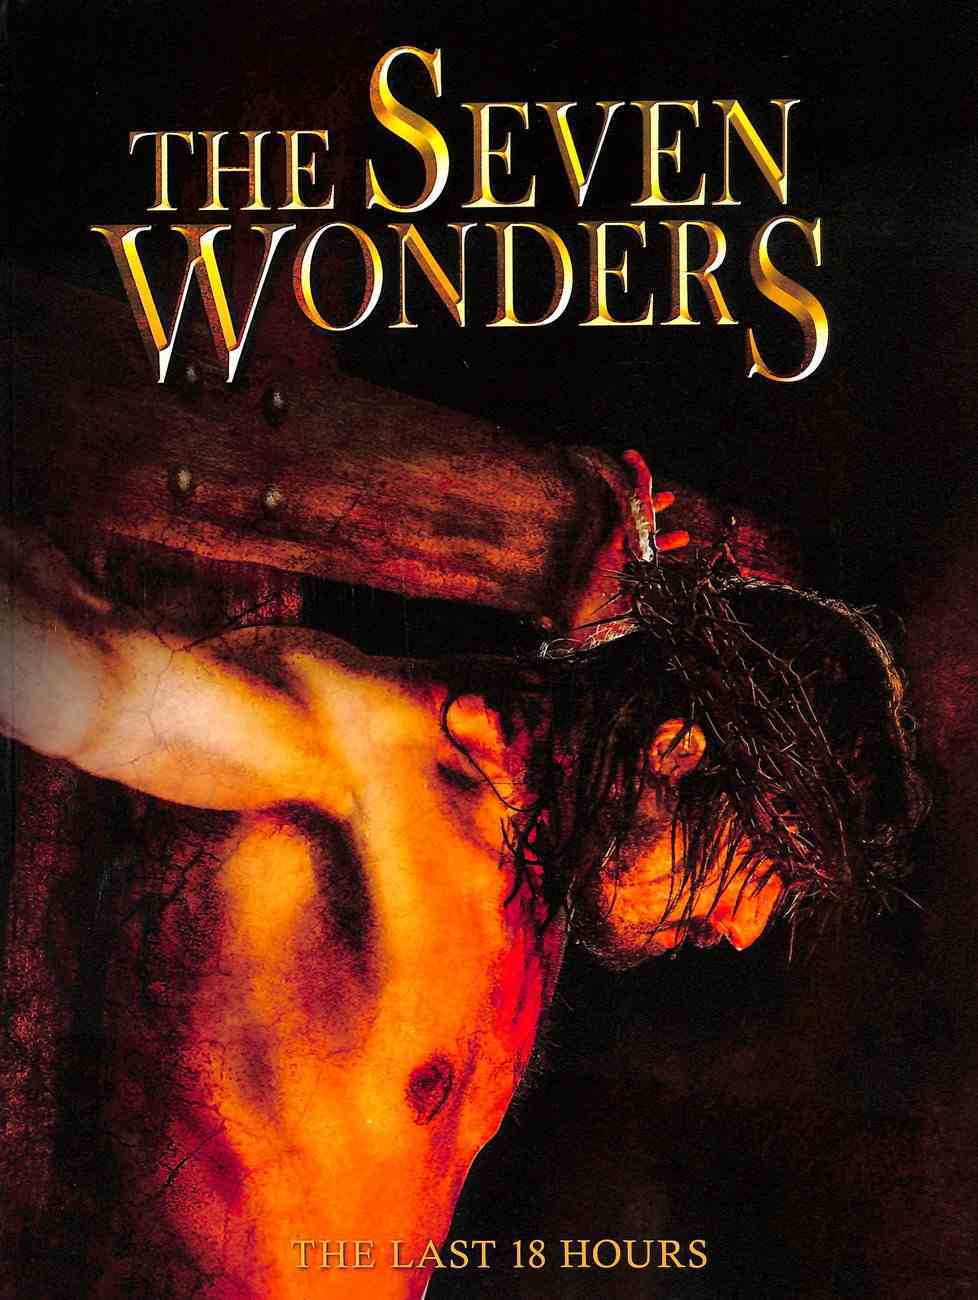 The Seven Wonders of the Cross: The Last 18 Hours (Illustrated Companion Book) Paperback